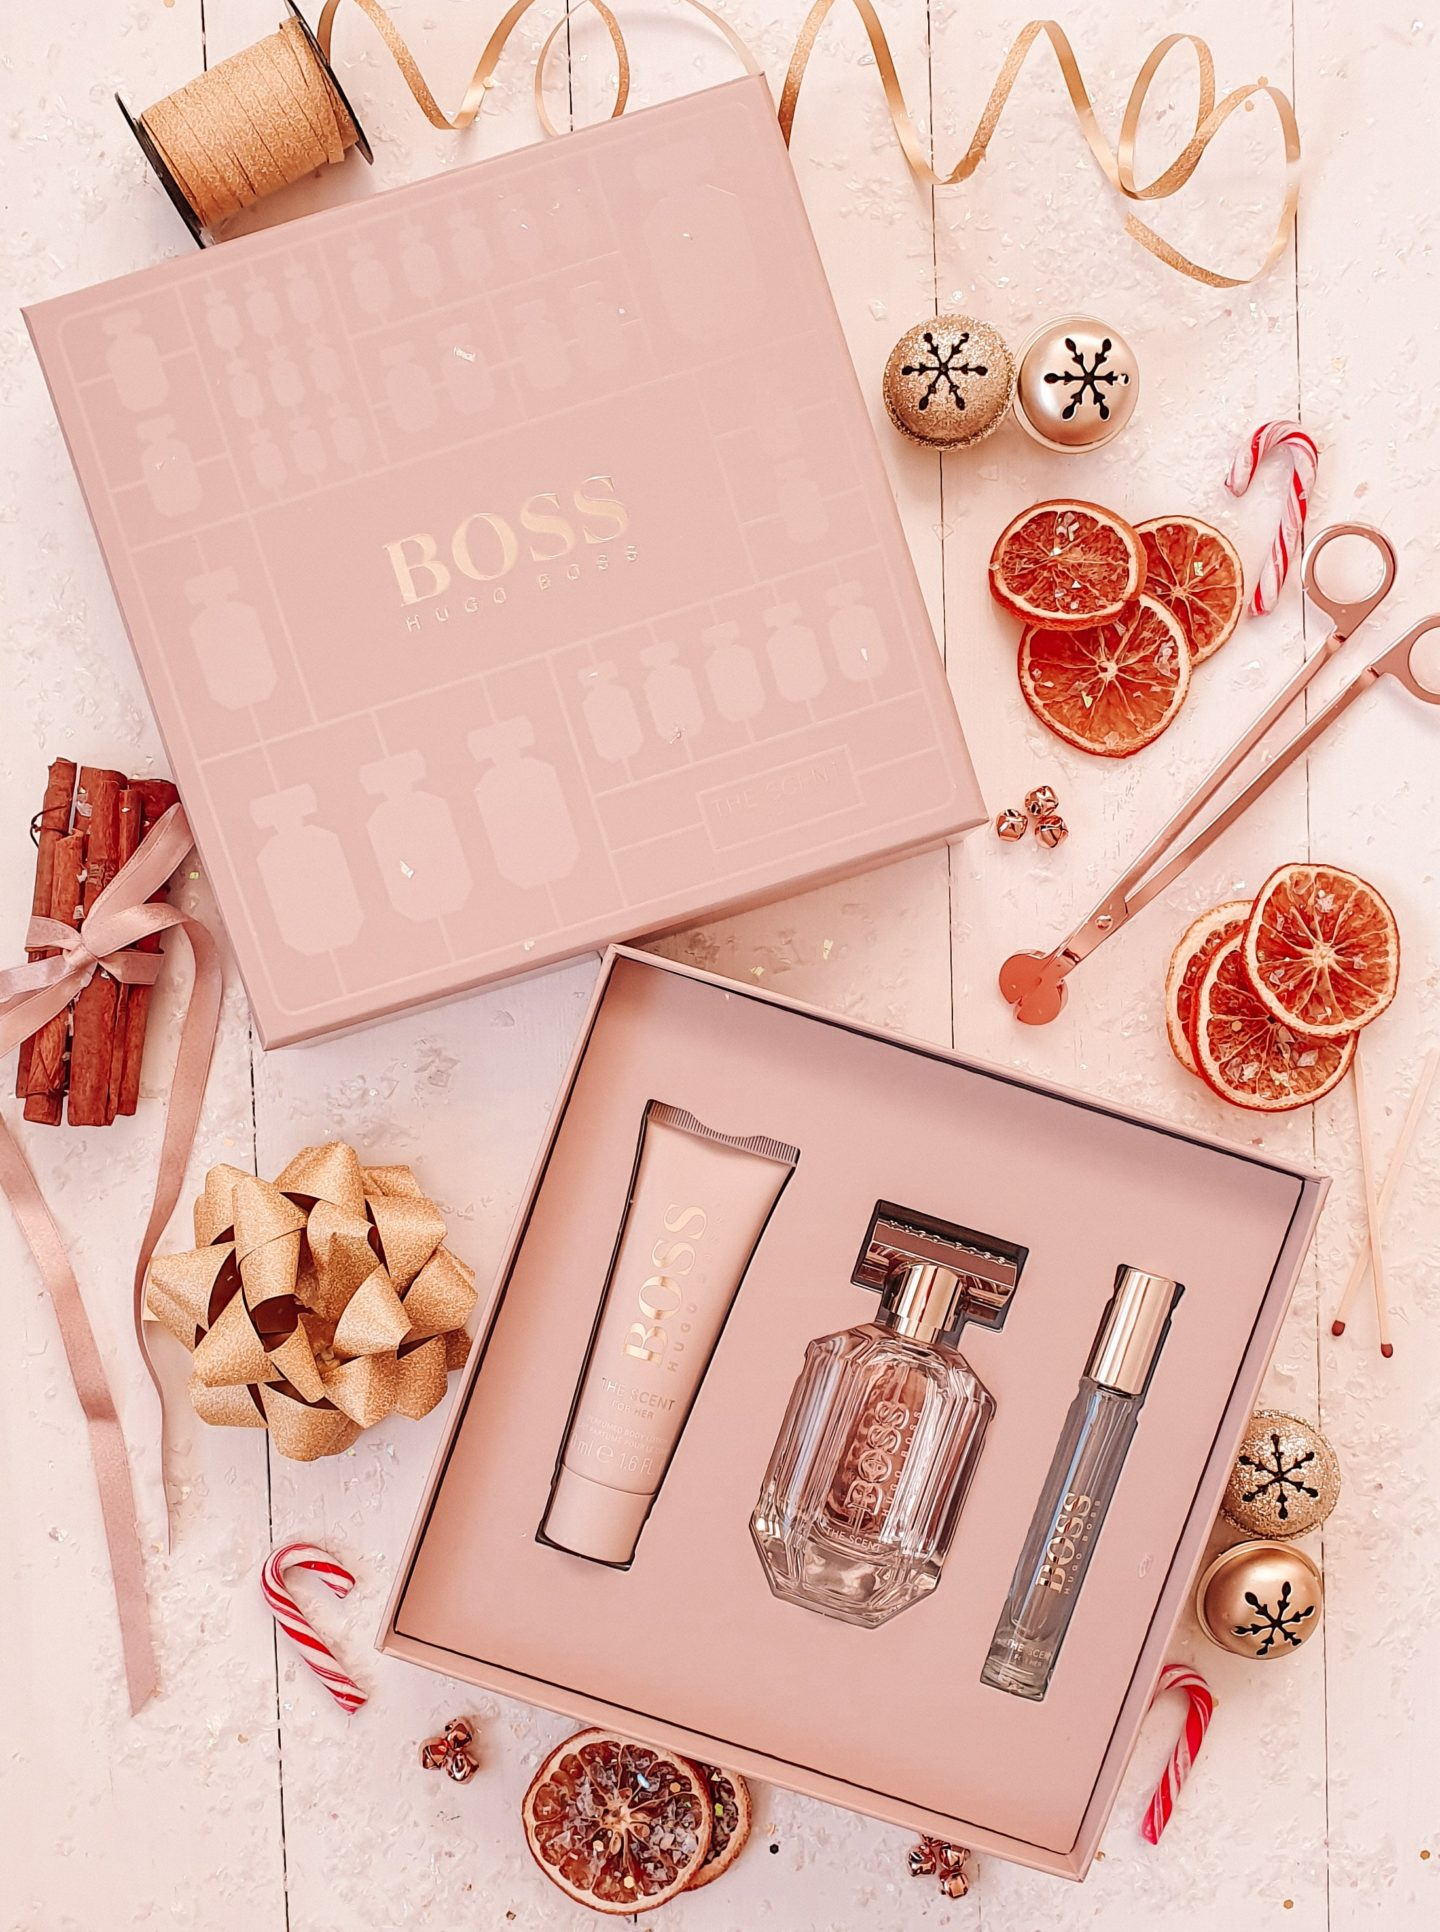 BOSS The Scent For Her Gift Set 50ml